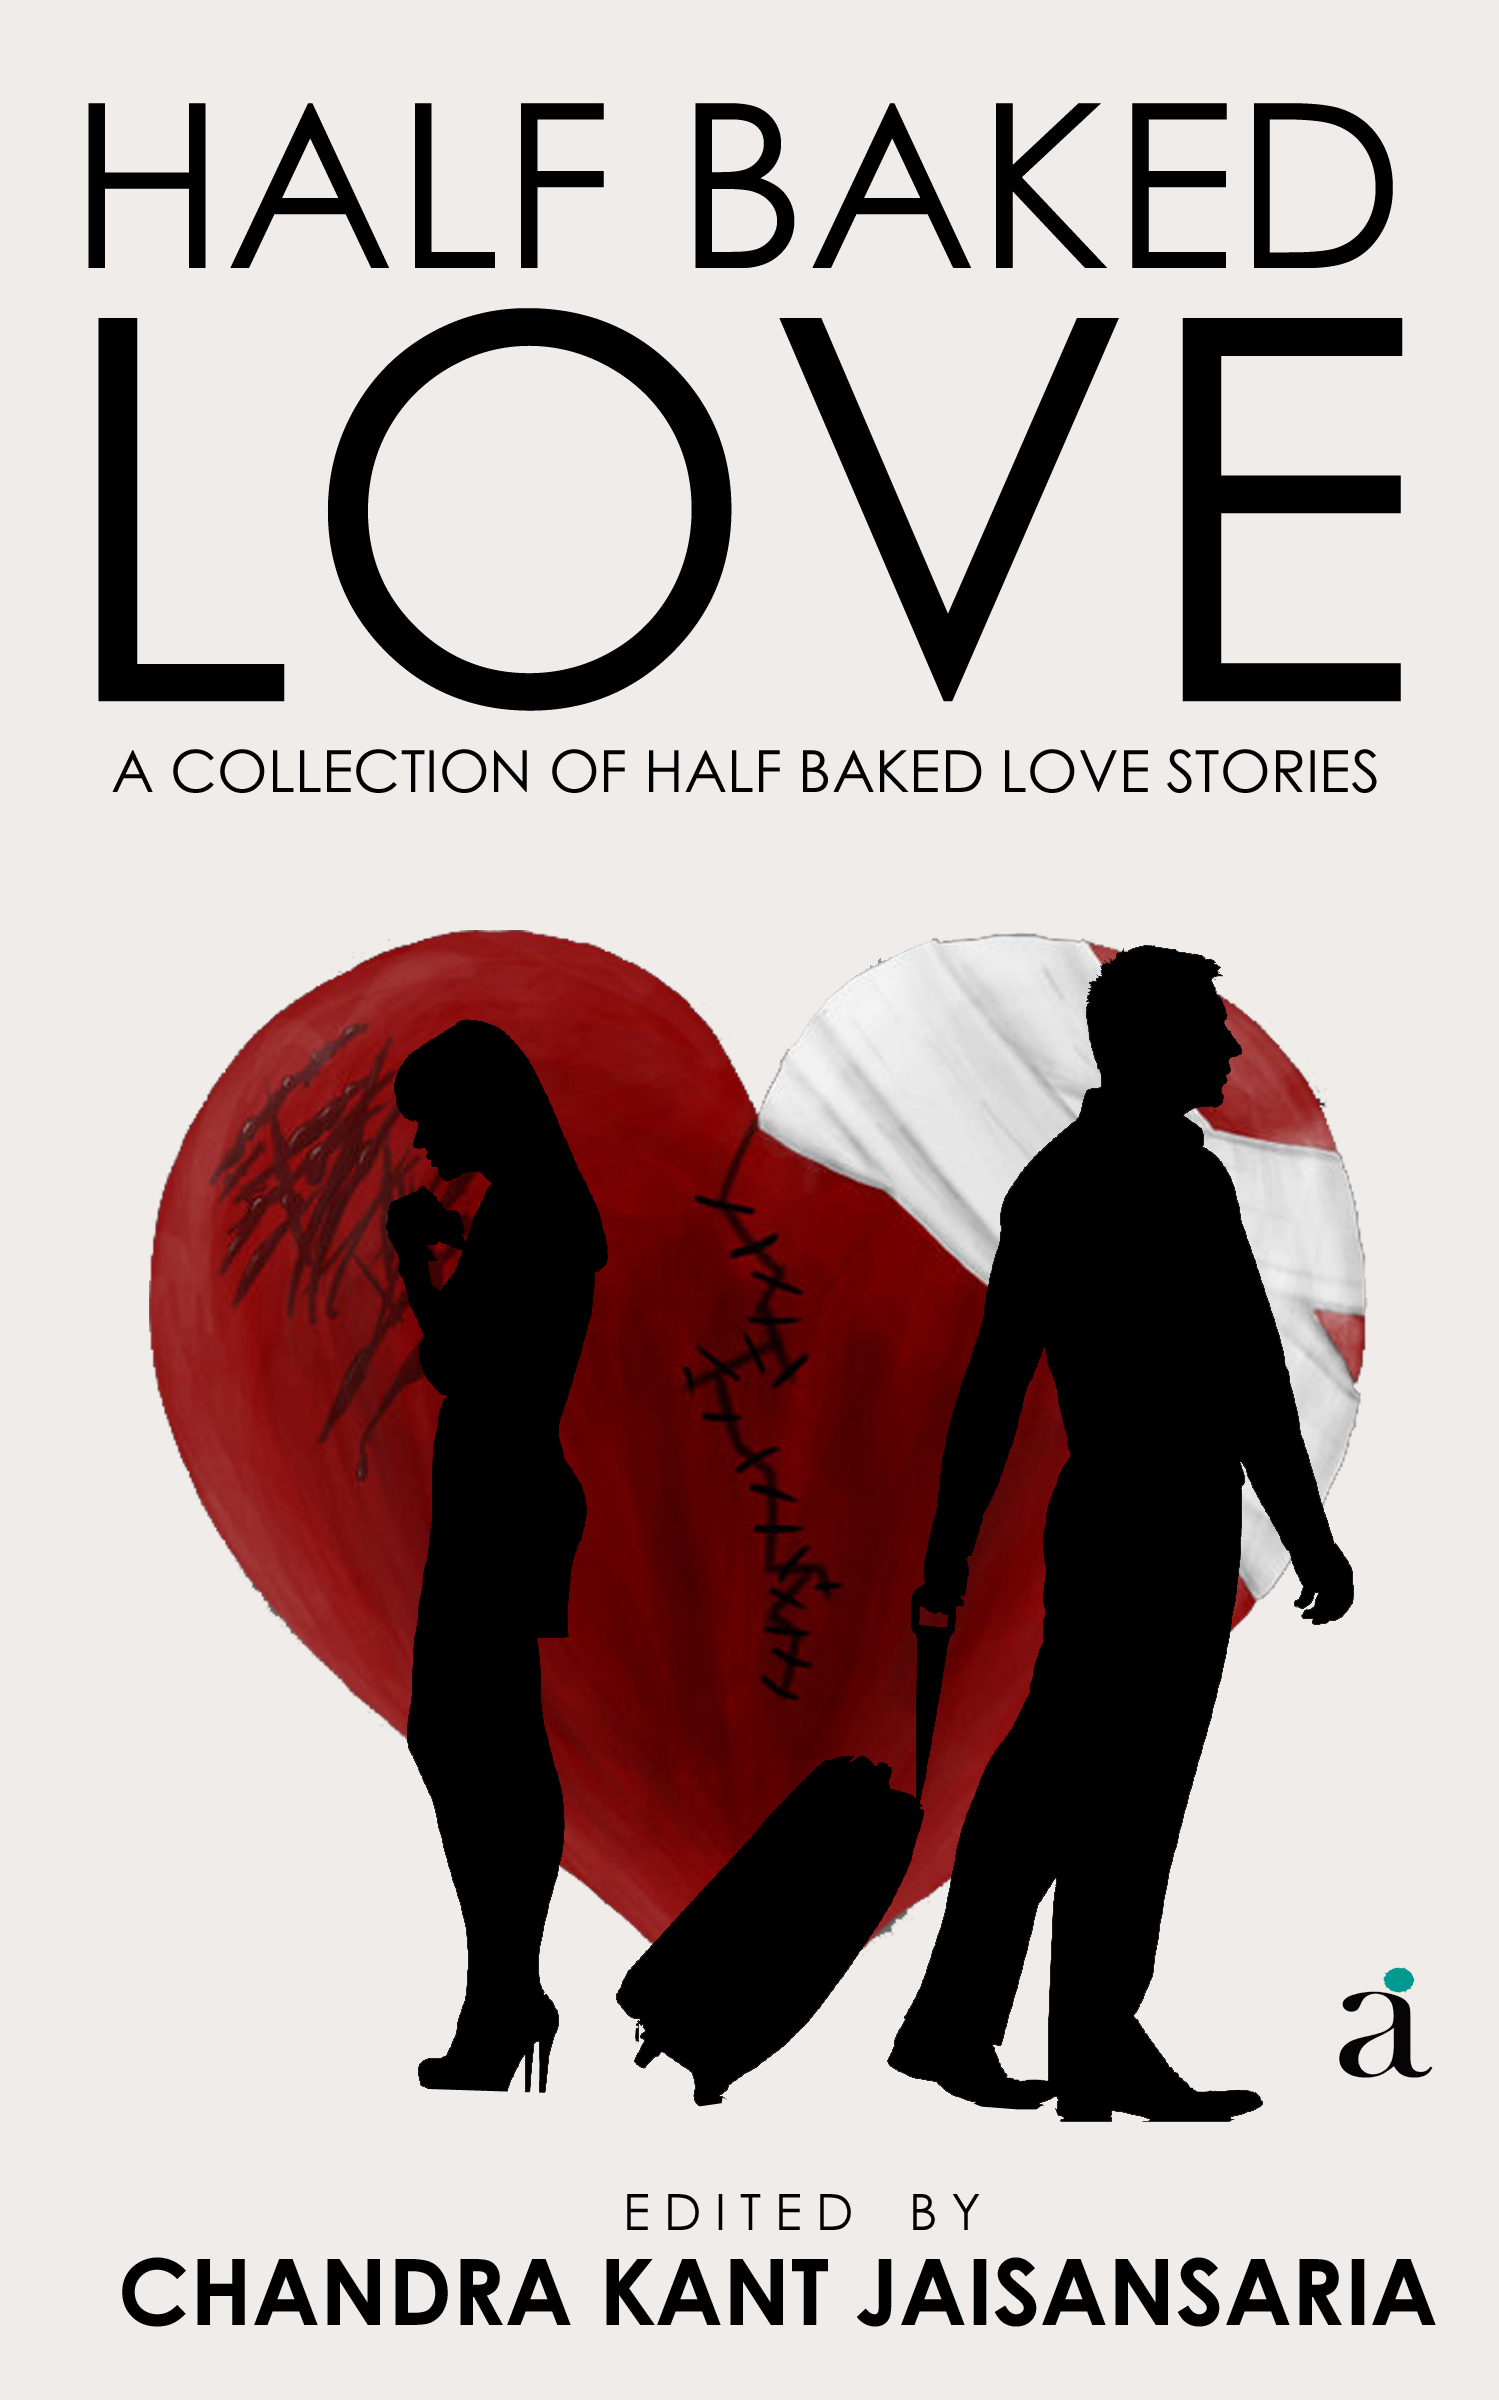 Half Baked Love - A Collection of Half Baked Love Stories